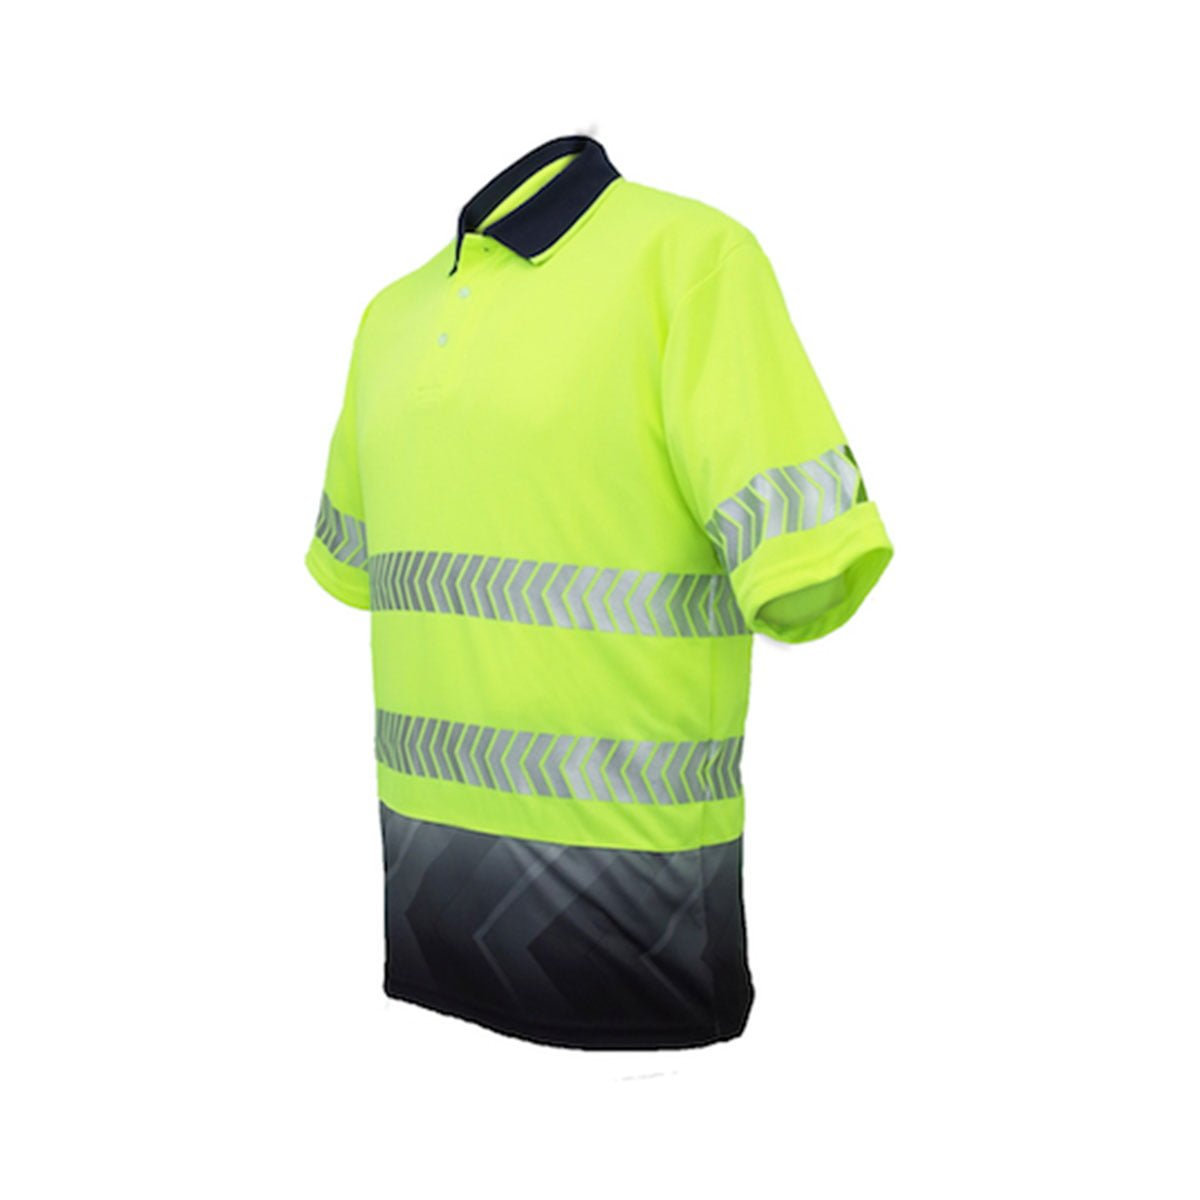 HI-VIS S/S SUBLIMATED REFLECTIVE POLO-Lime / Navy